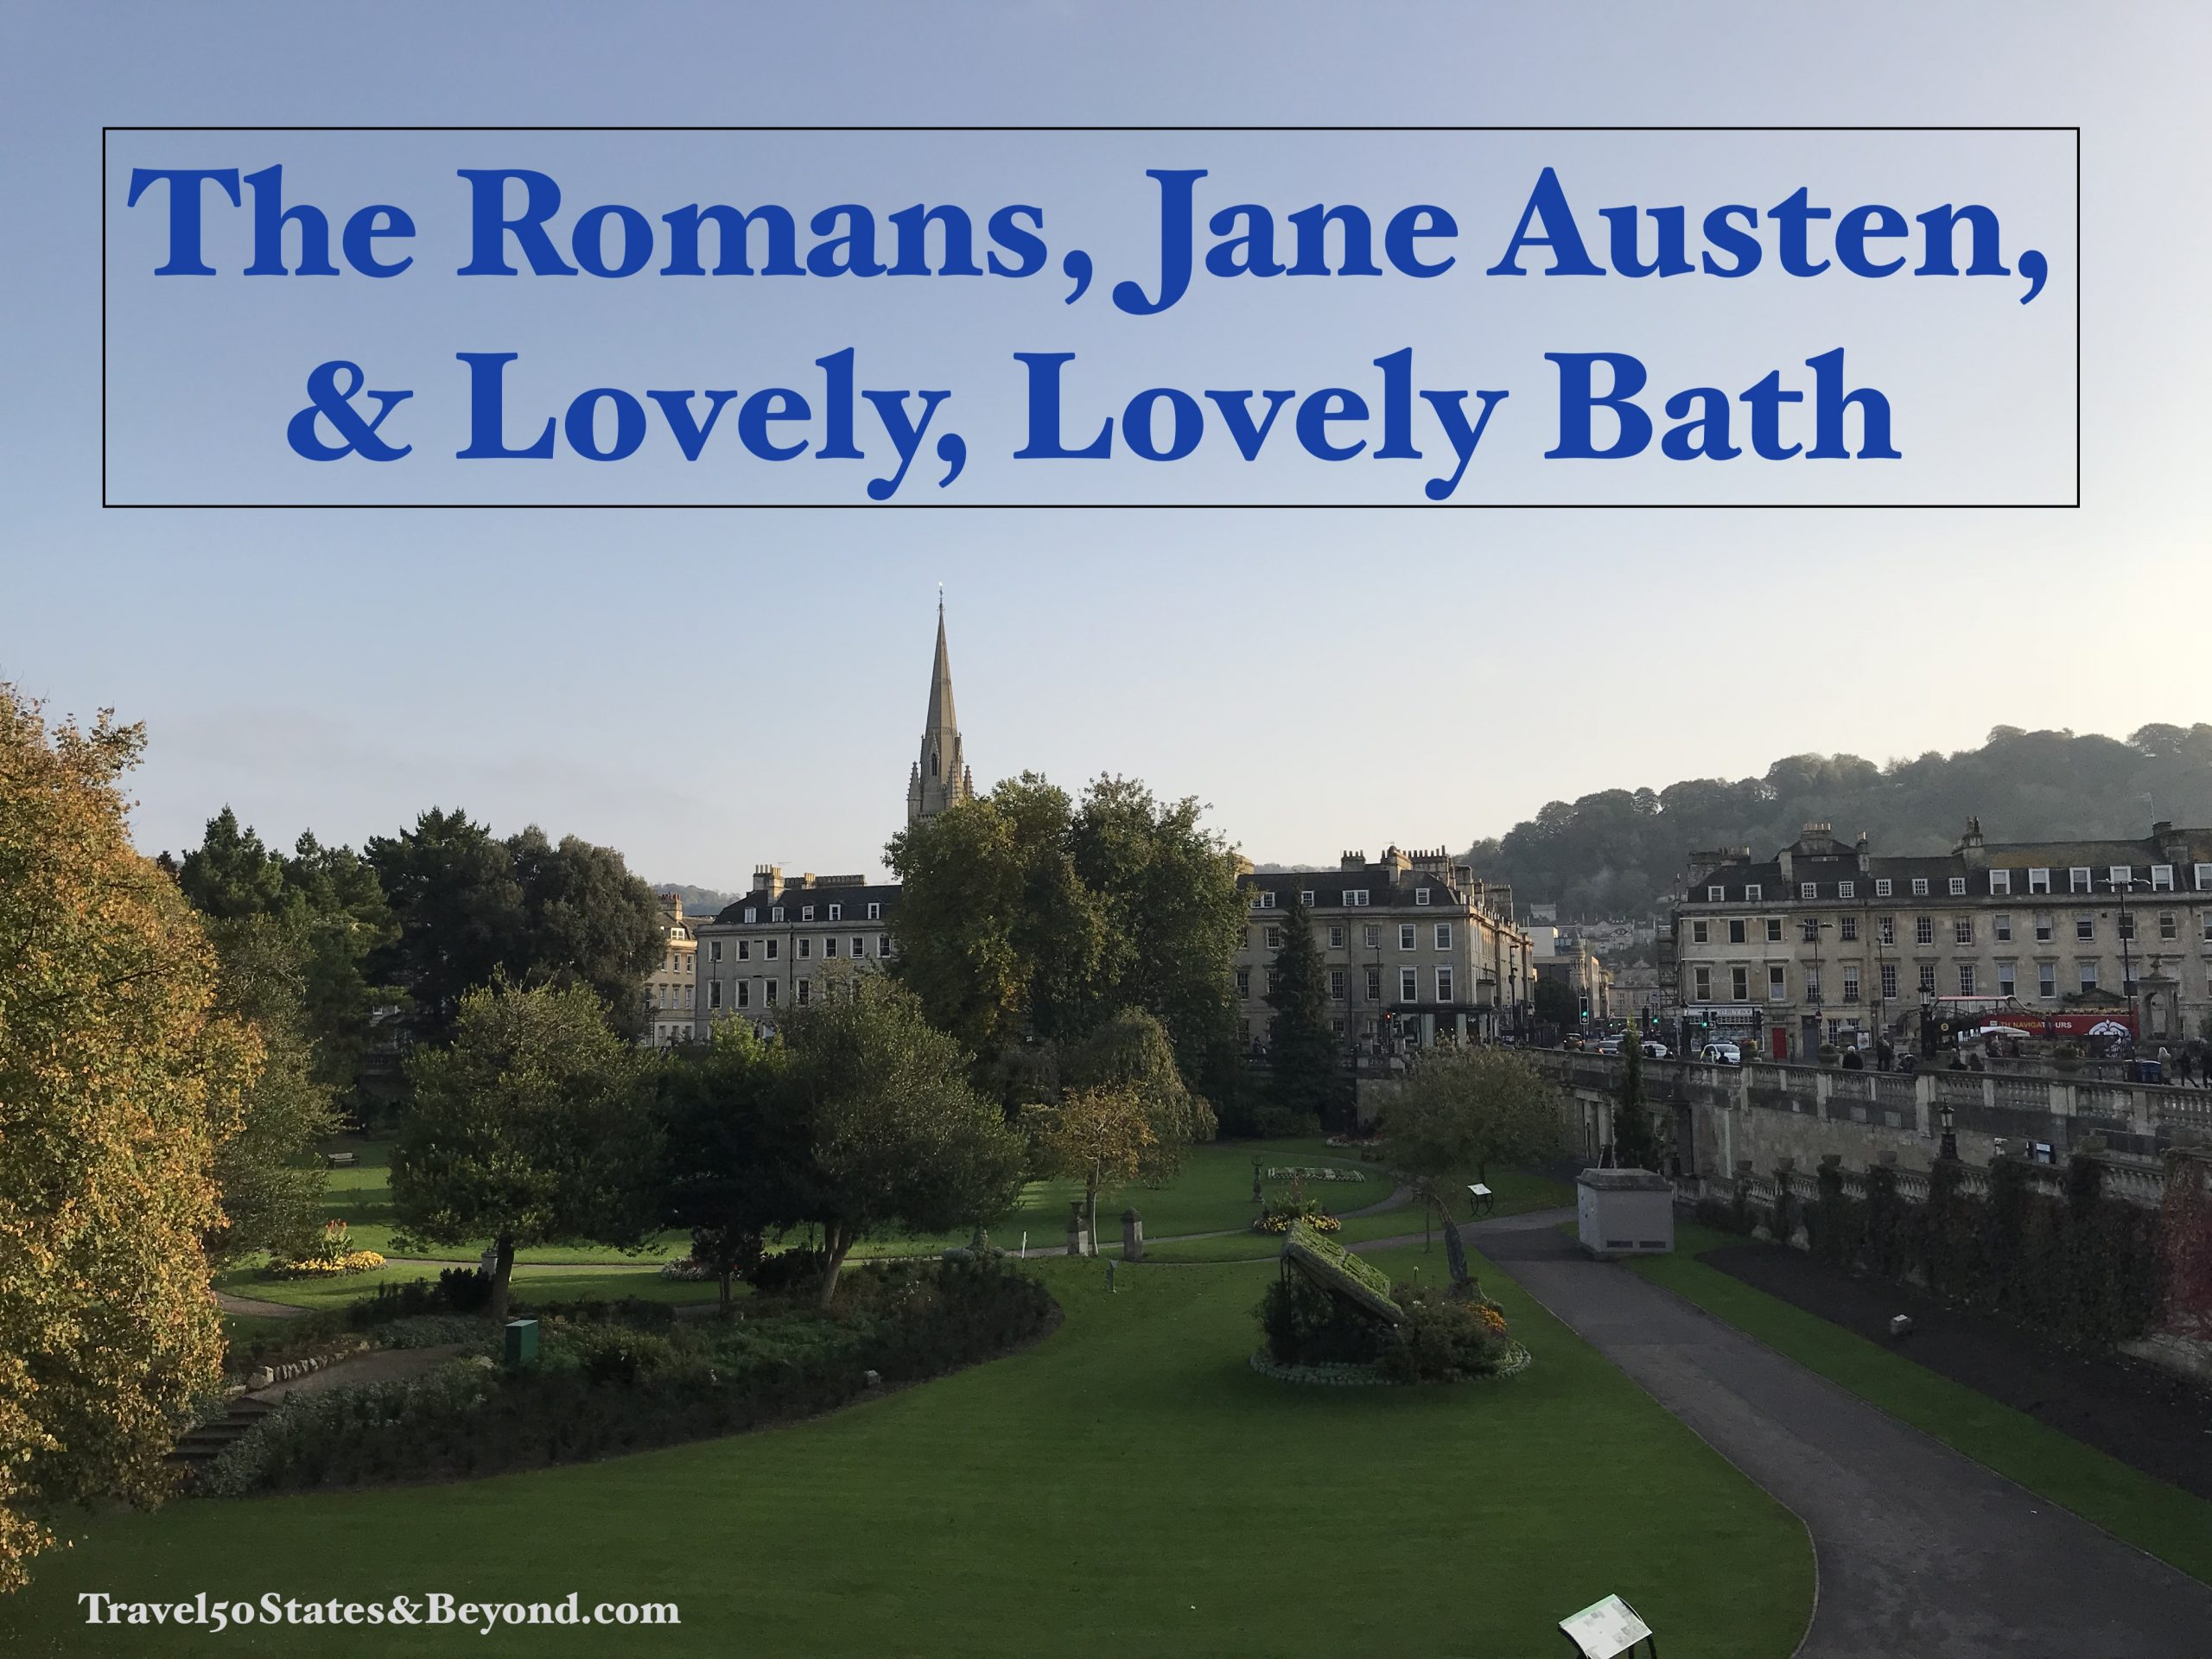 The Romans, Jane Austen, & Lovely, Lovely Bath